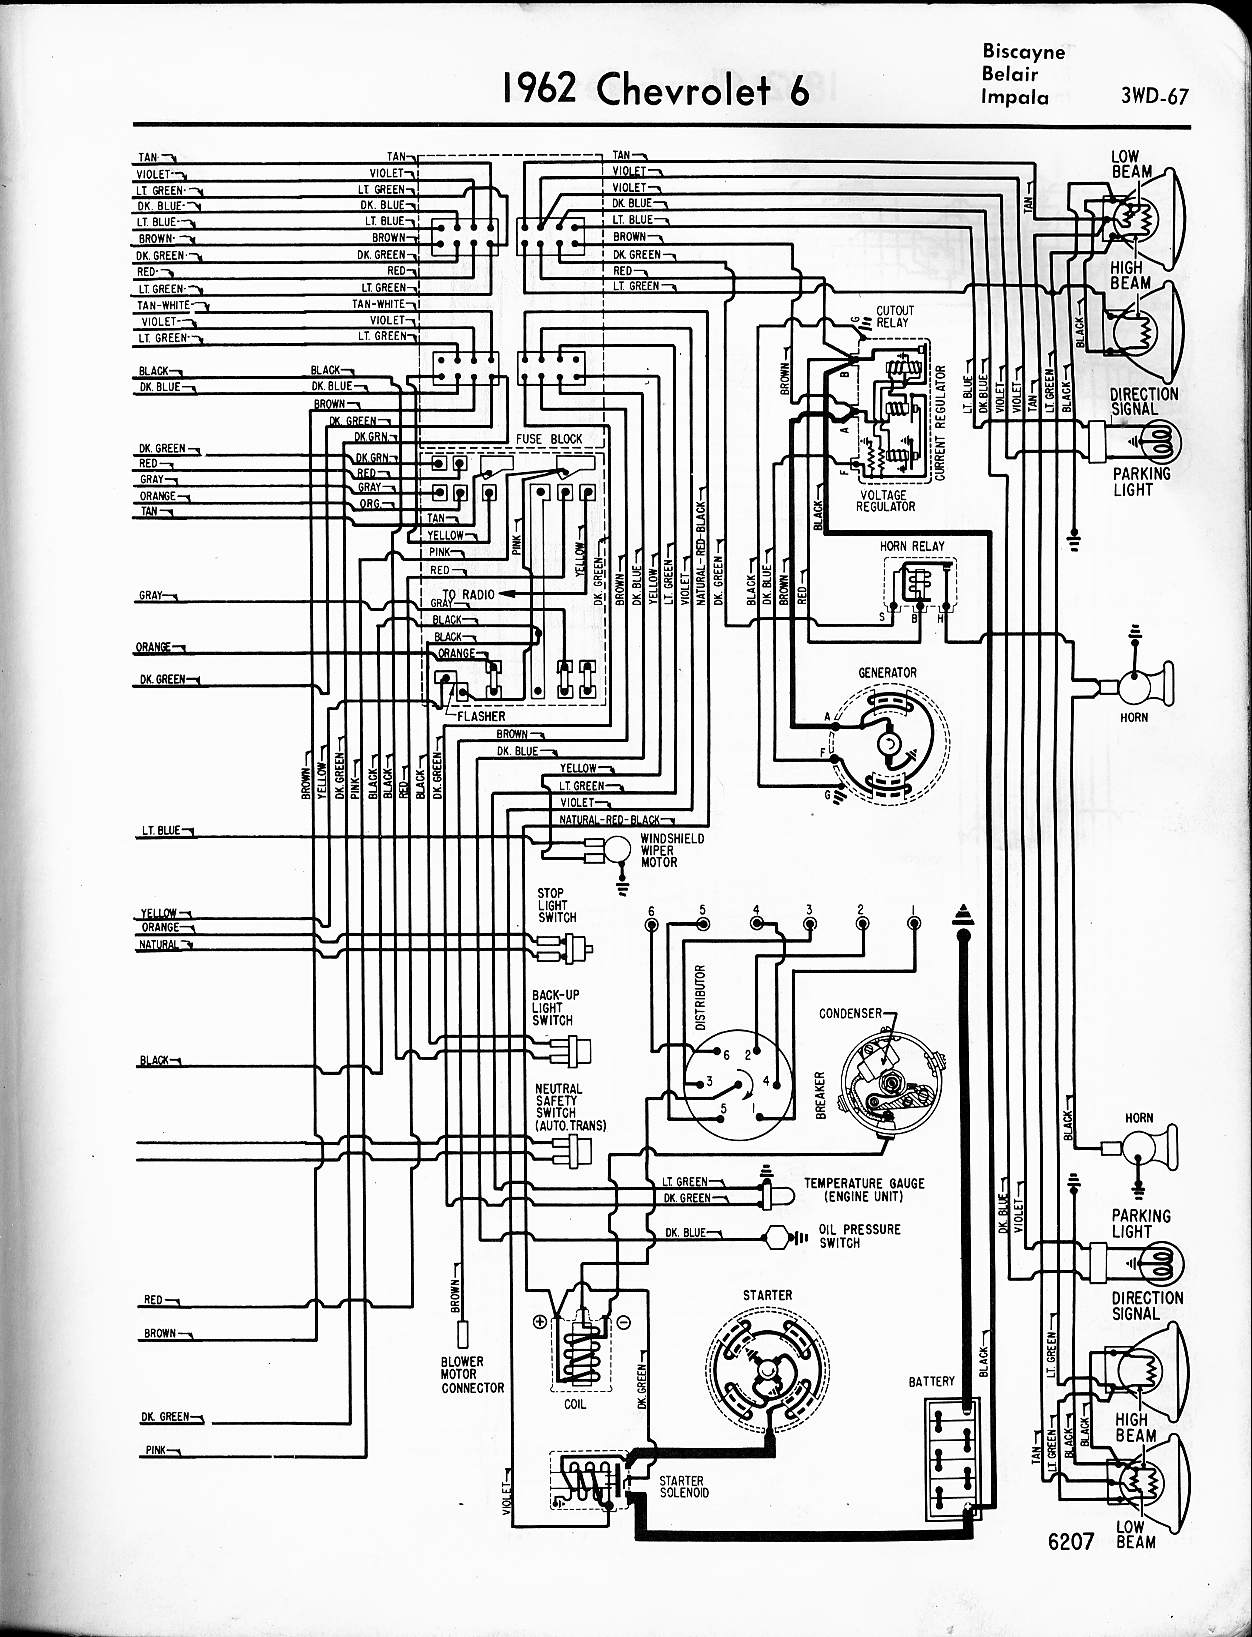 1966 chevy impala starter diagram 1966 free engine image for user manual